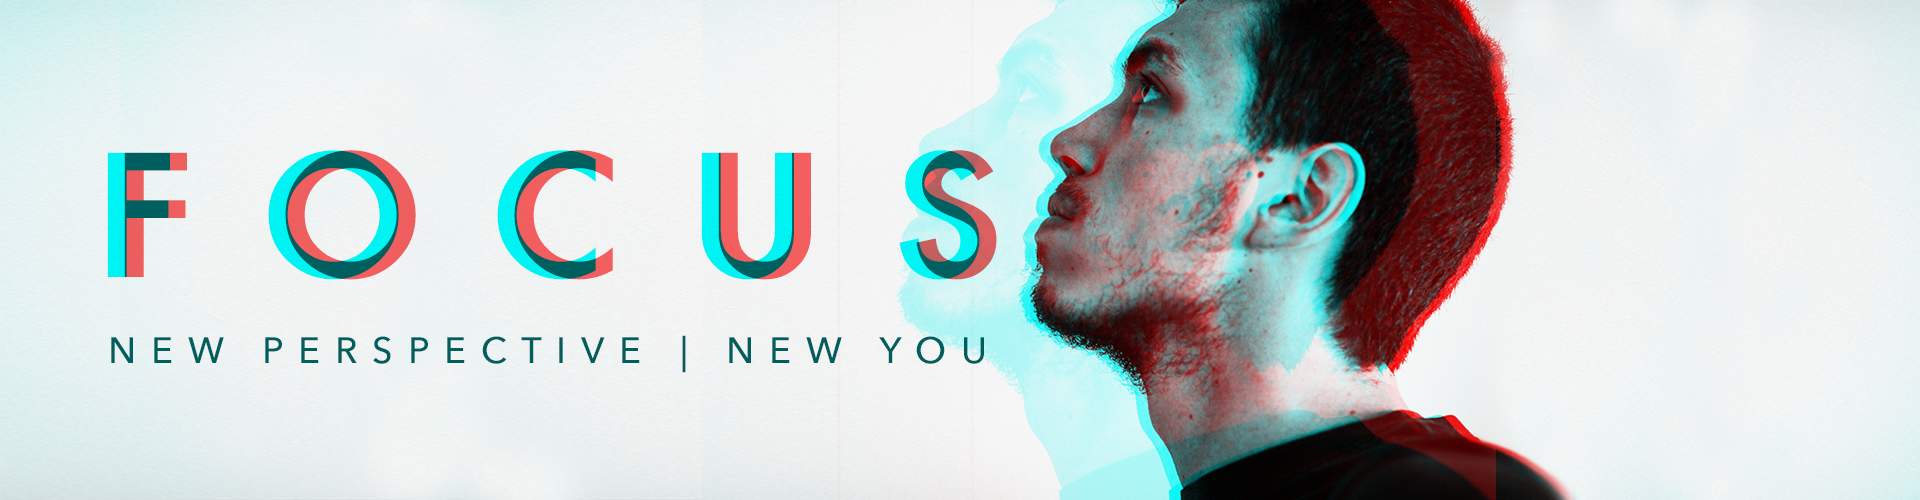 Focus: New Perspective-New You